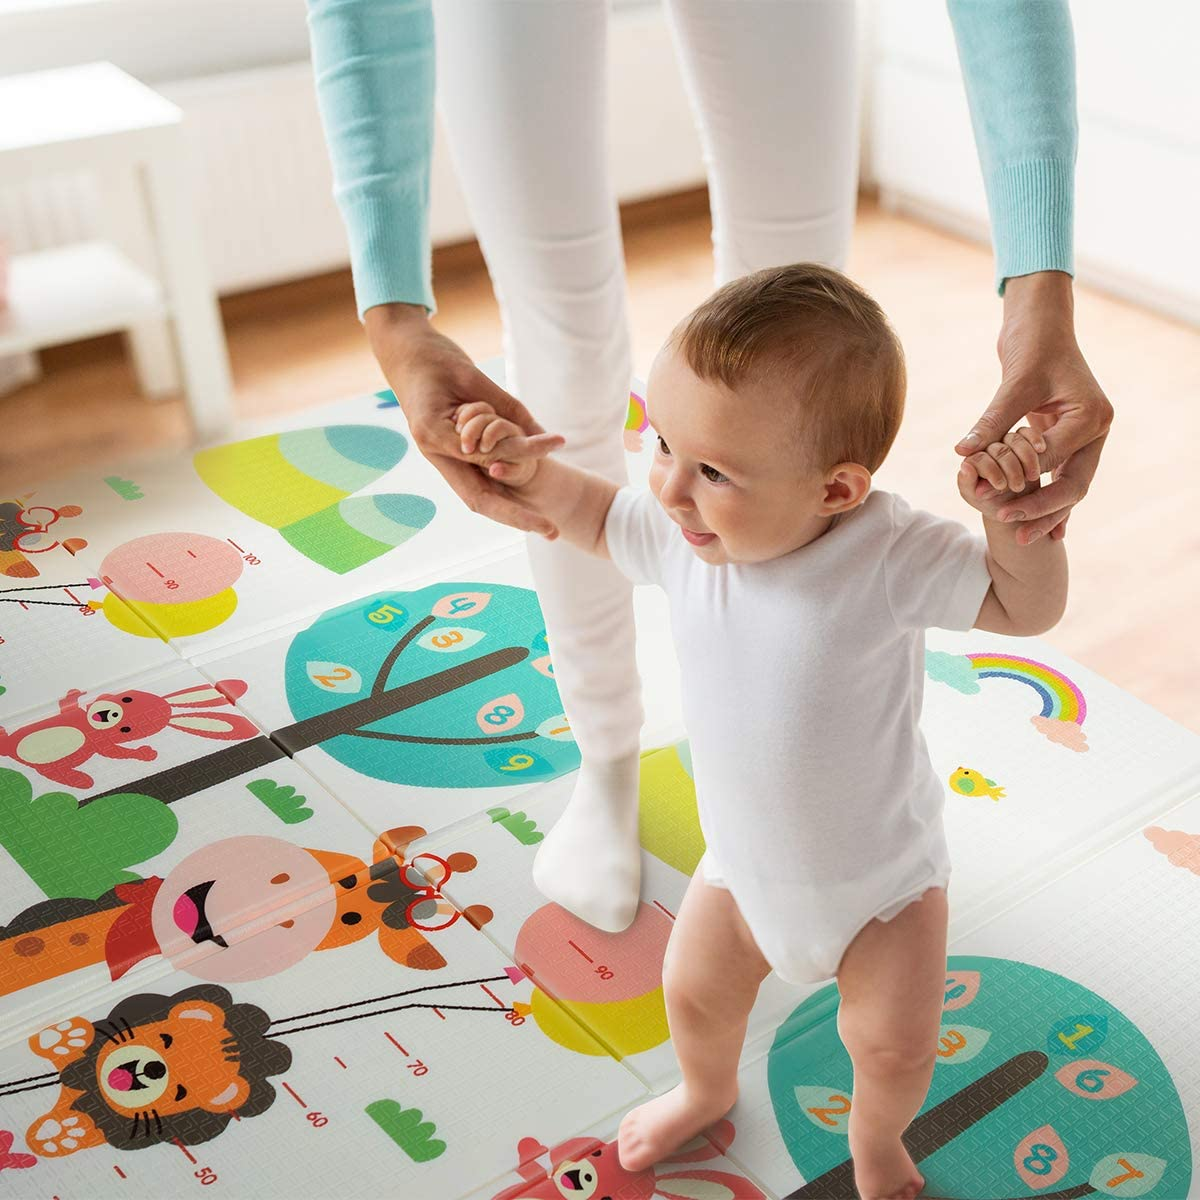 """Baby Play Mat 【Easy to Clean Fold Up】Non-BPA Non-Toxic Foam Folding Playmat 79/"""" x 70 0.6 Thick Extra Large Reversible Crawling Mat Portable Toddlers Kids Waterproof Non-Slip Activity Tummy Time"""